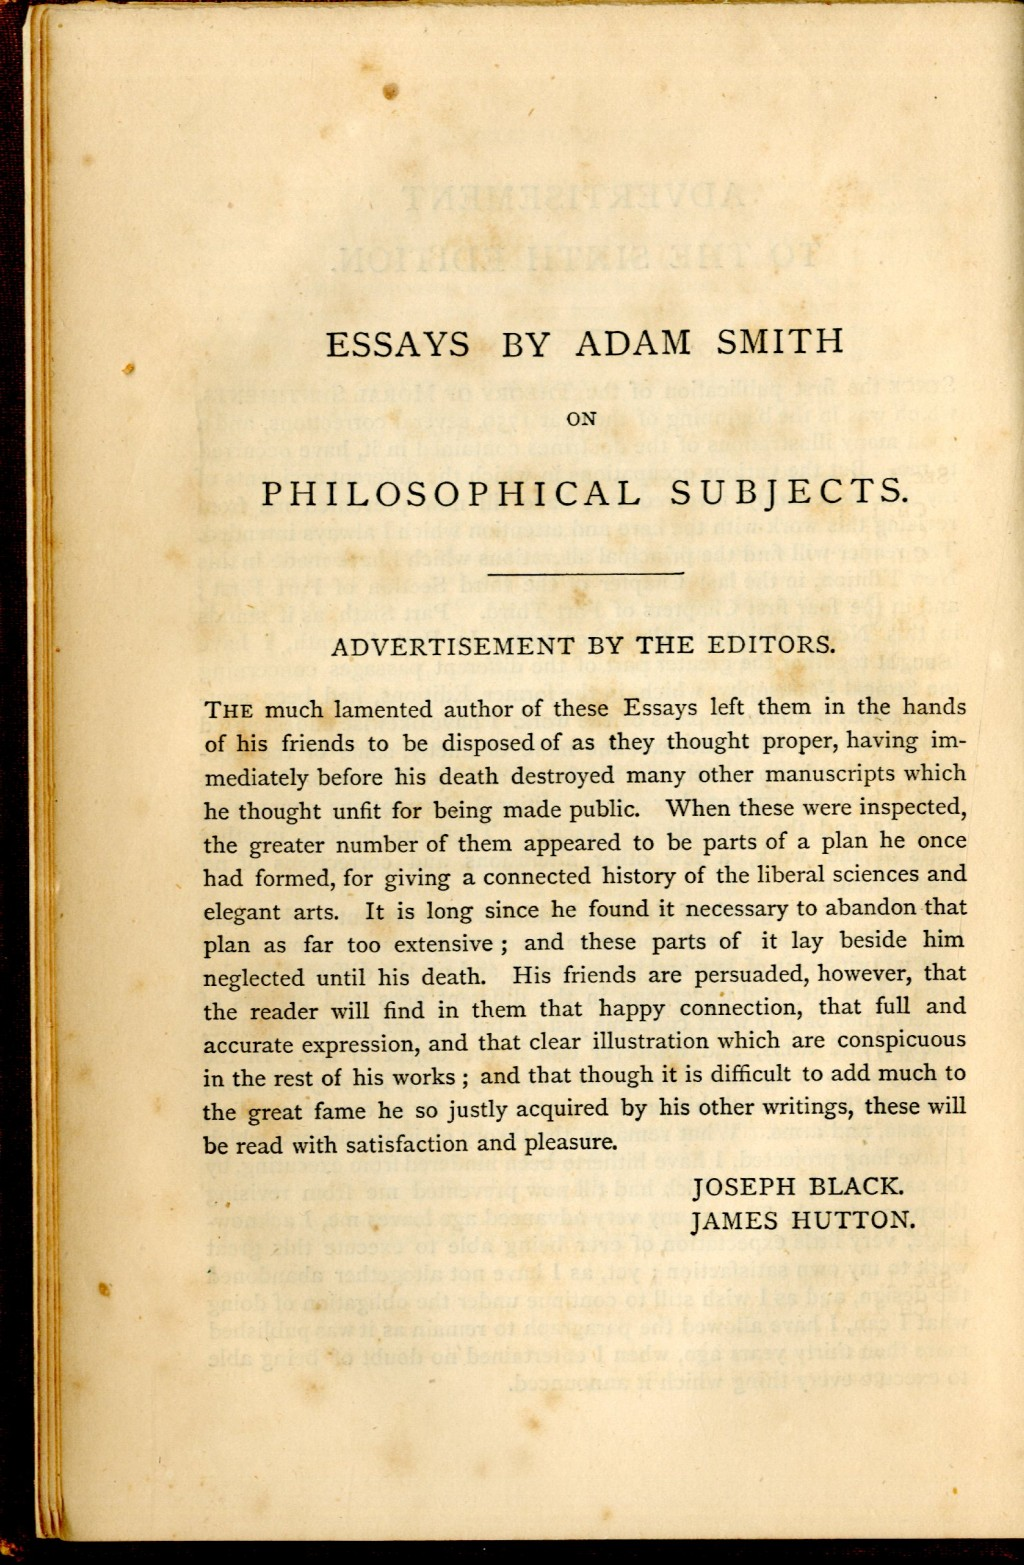 016 Essay Example Essays On Philosophical Best Subjects Smith Pdf Large